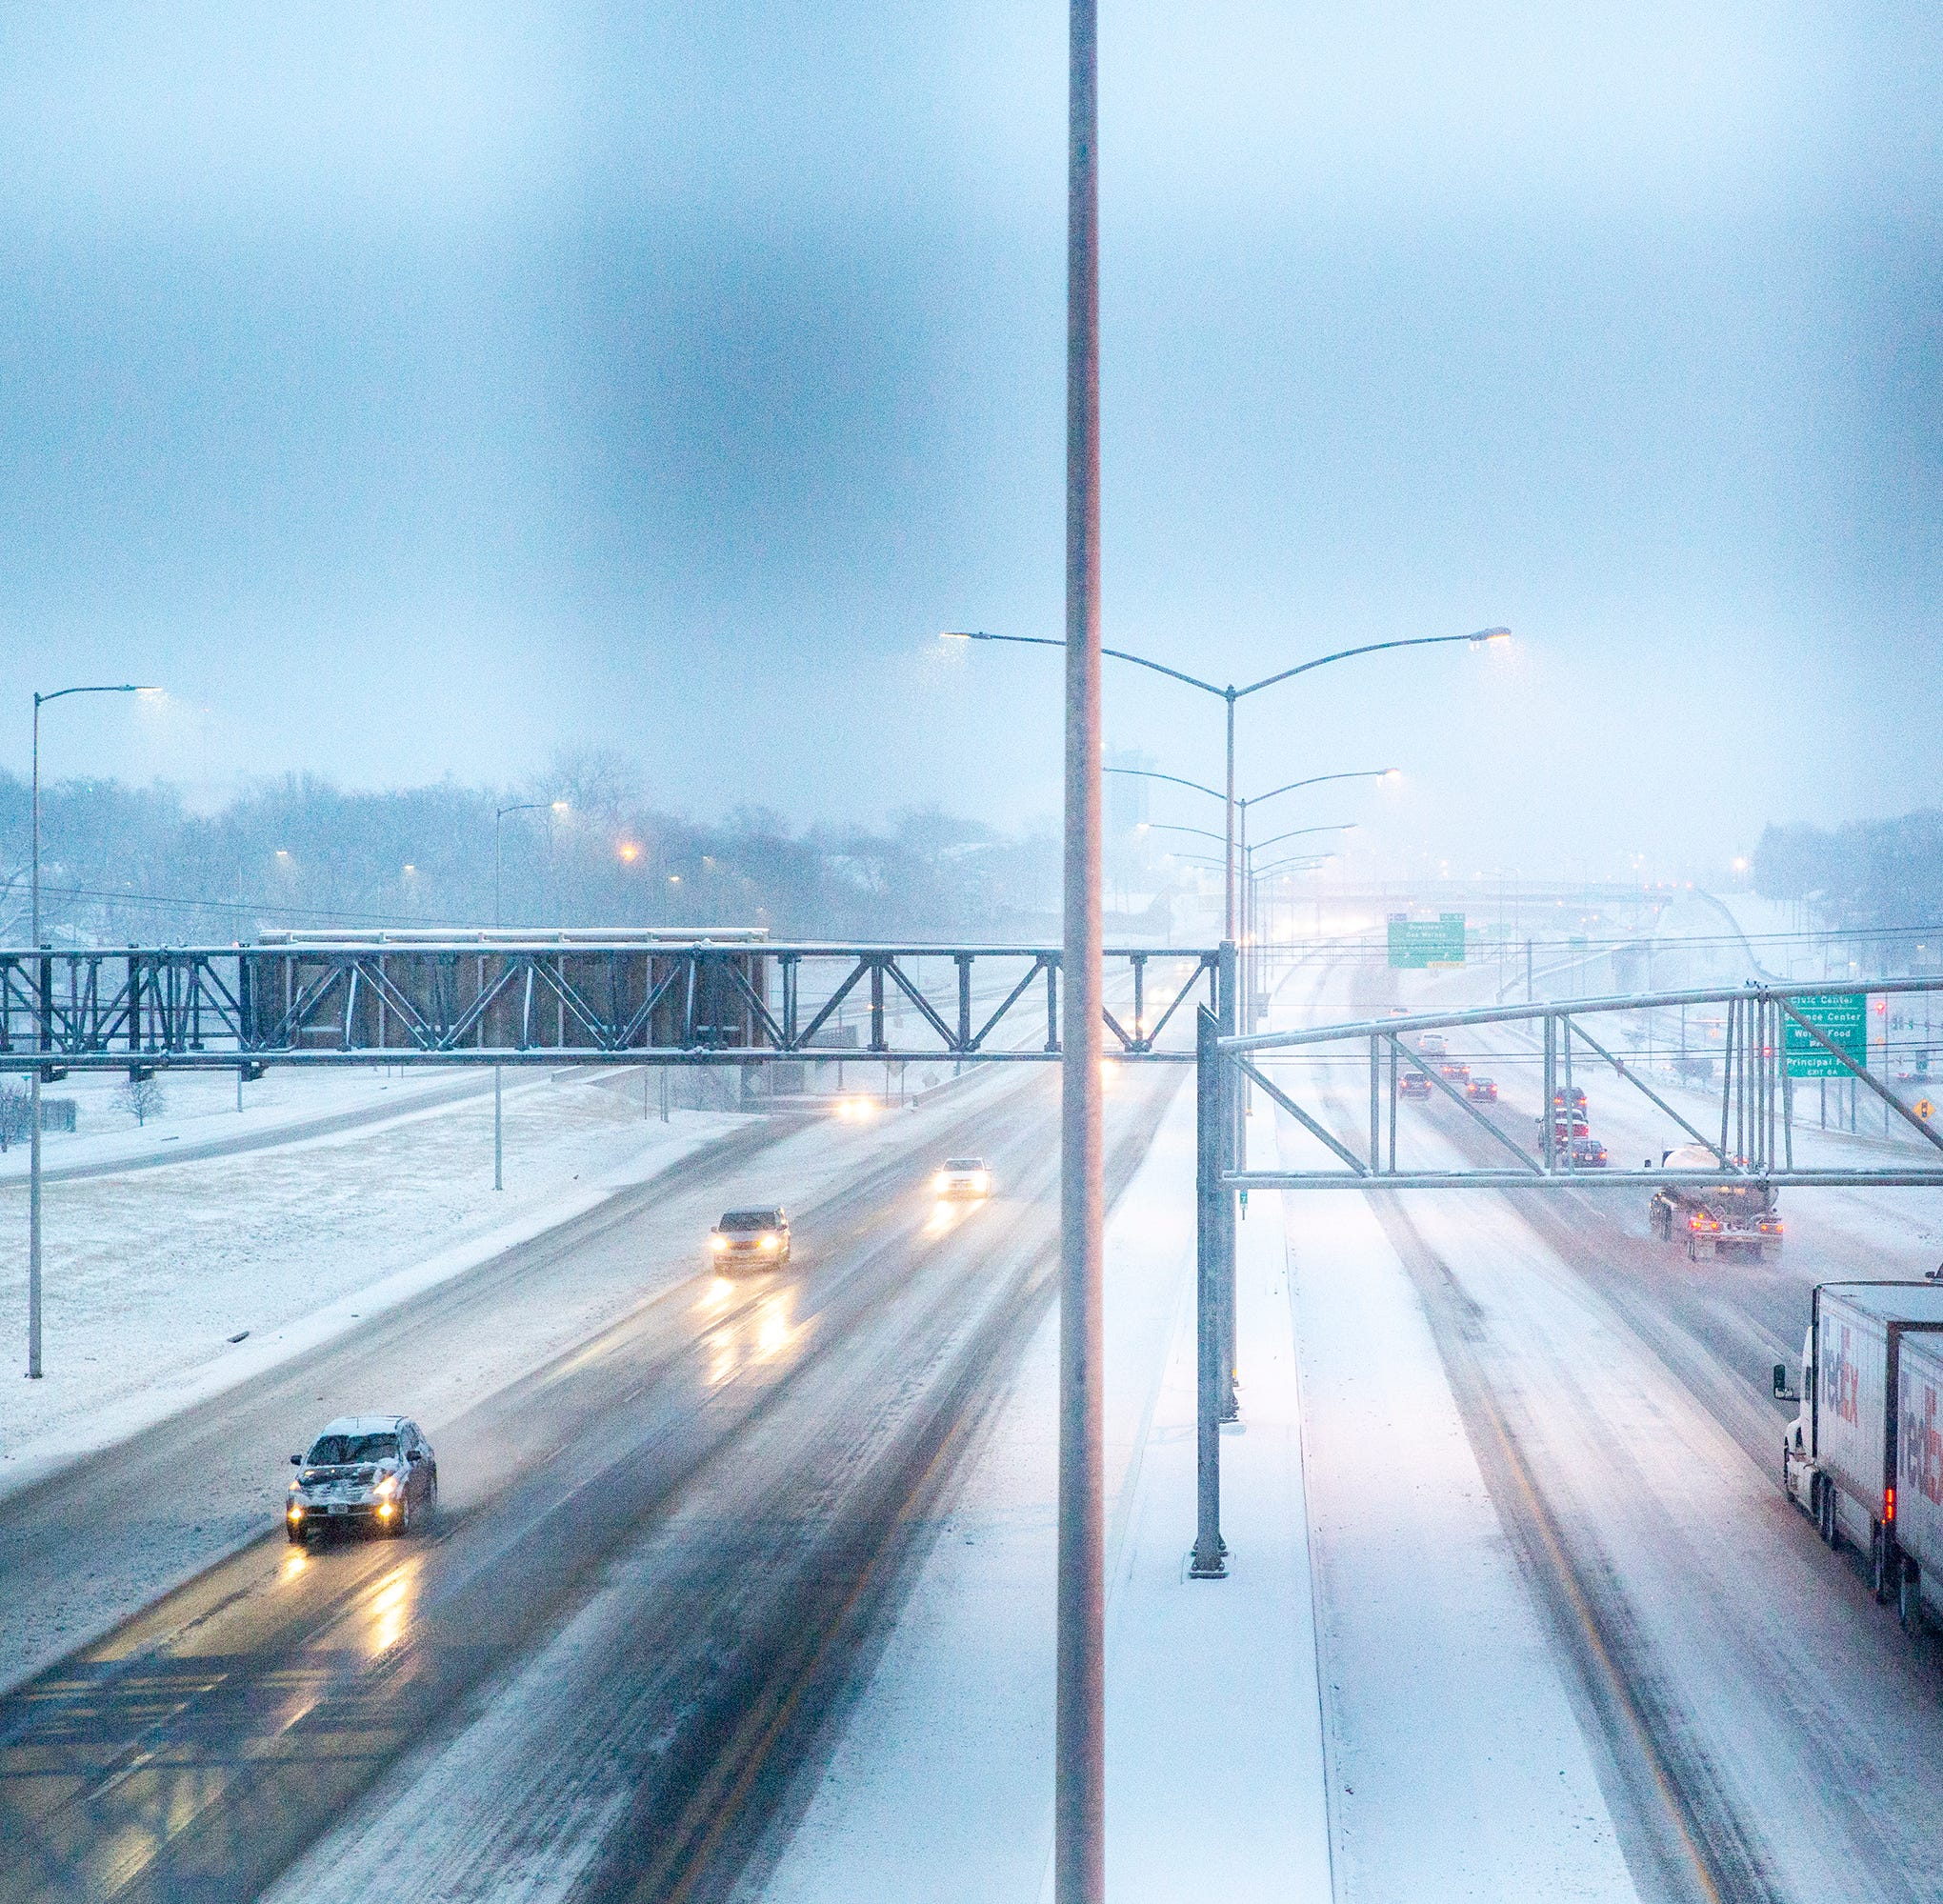 Iowa snow: When will it hit, how much will fall, and what will your commute look like?